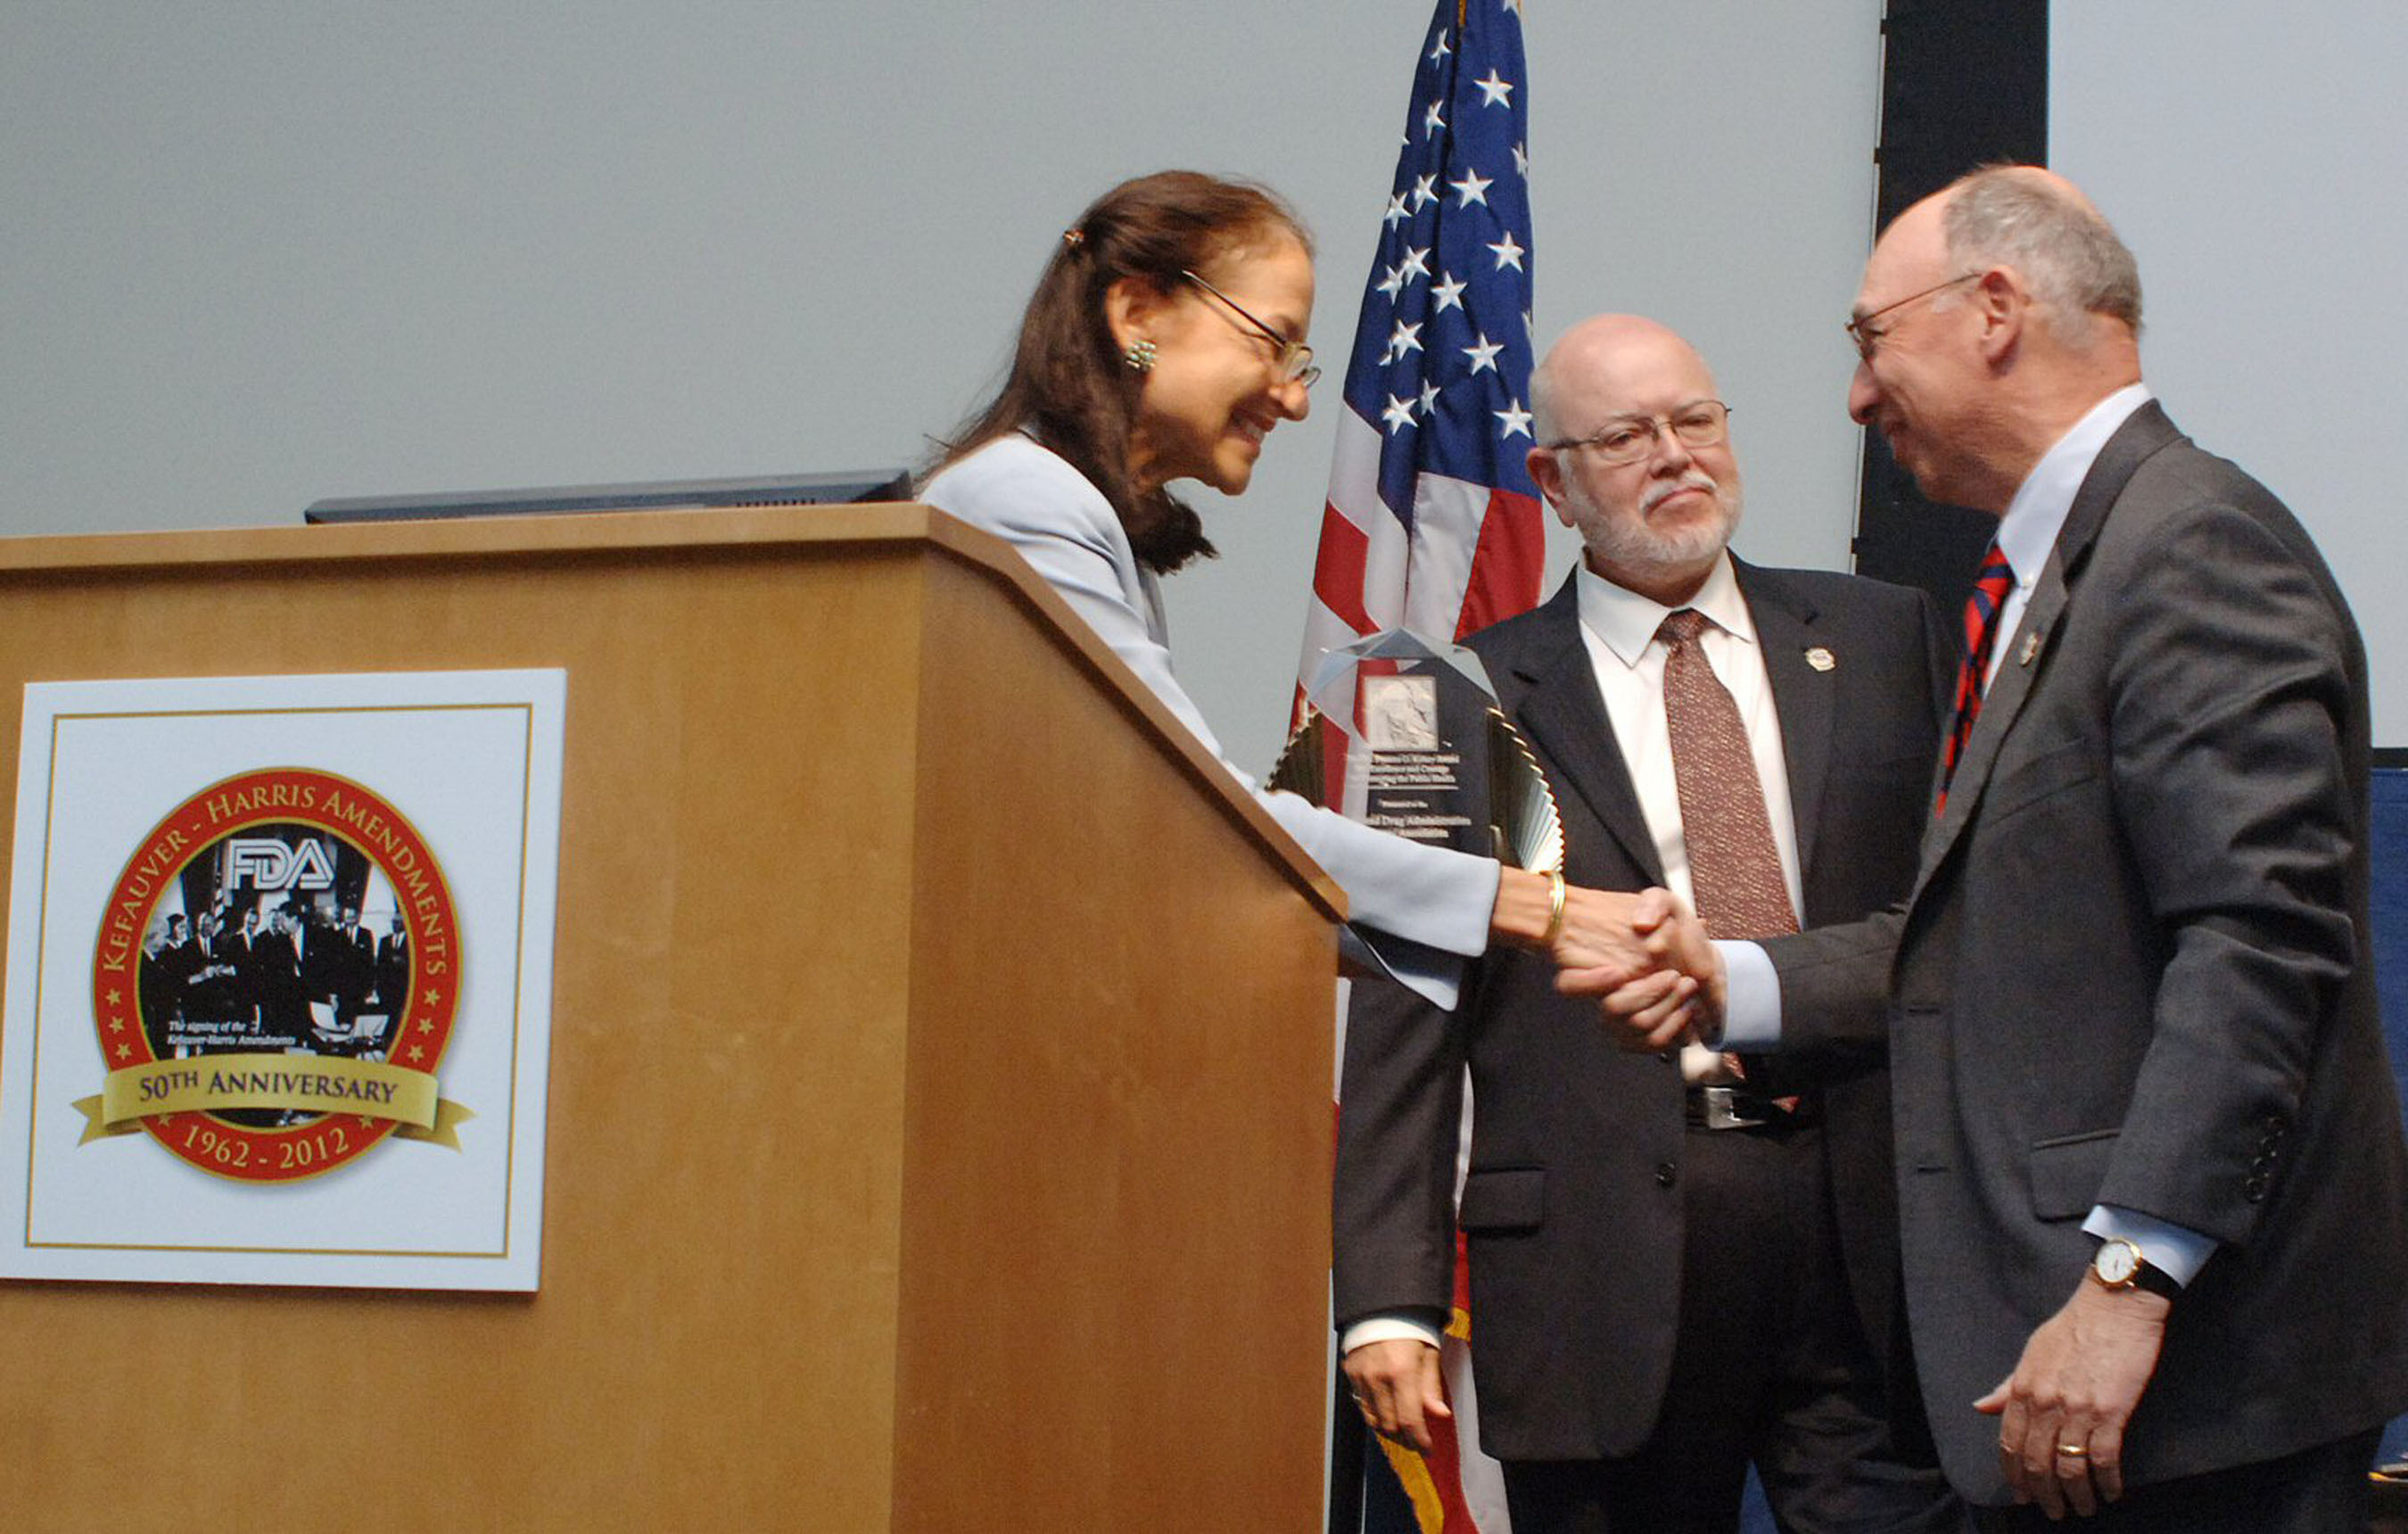 FDA Commissioner Dr. Margaret Hamburg presents The Frances O. Kelsey Award for Excellence and Courage in Protecting the Public Health to FDAAA President Alan Andersen and FDAAA Chairman of the Board Joseph Levitt.  (PRNewsFoto/Food and Drug Administration Alumni Association)